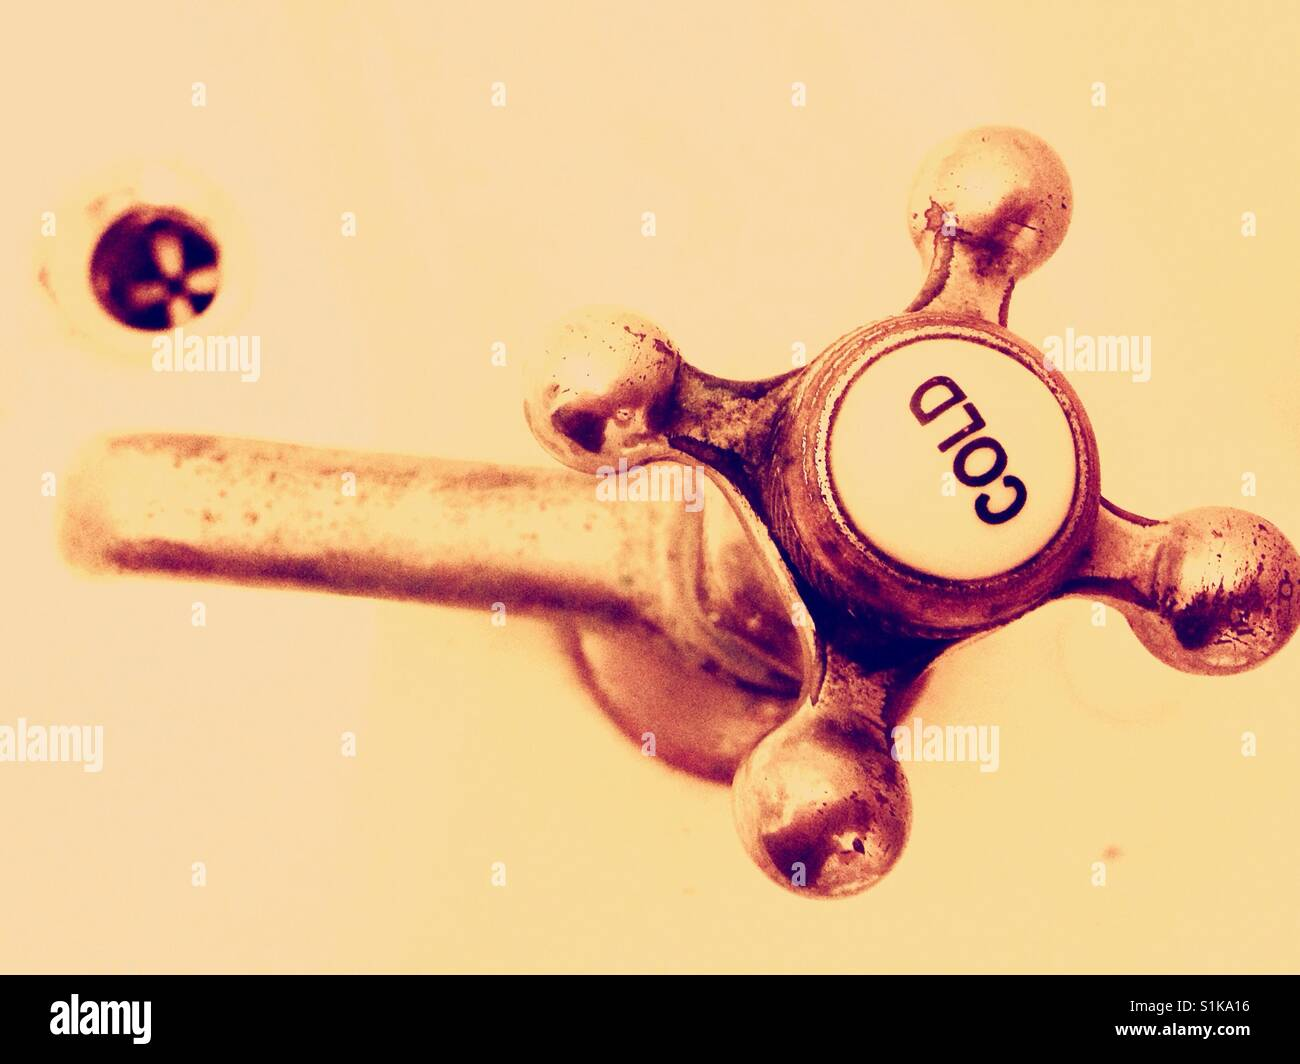 Cold tap- North Carolina - Stock Image